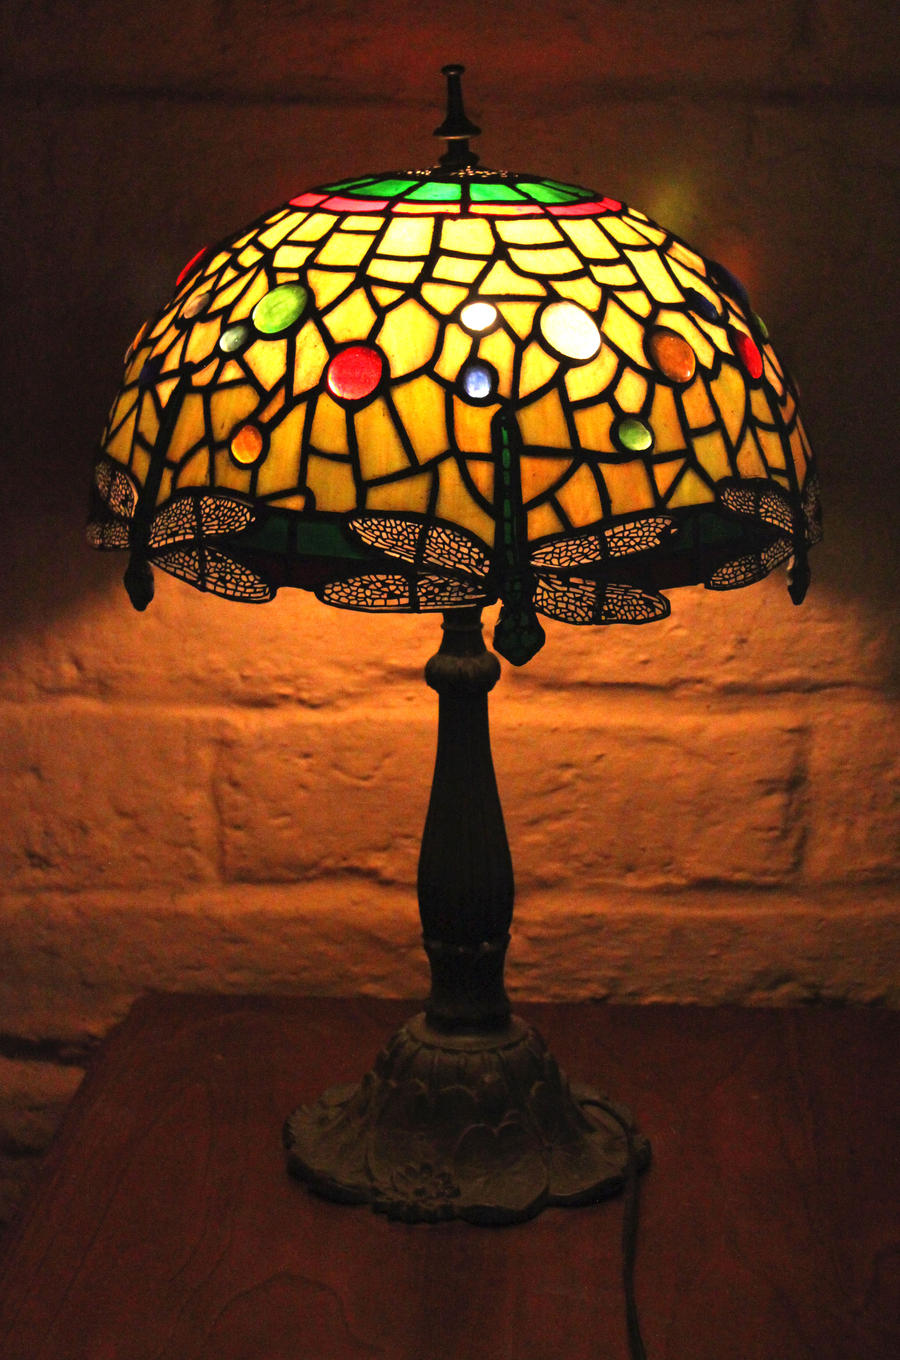 Tiffany style leadlight lamp by digimaree on deviantart tiffany style leadlight lamp by digimaree tiffany style leadlight lamp by digimaree aloadofball Images